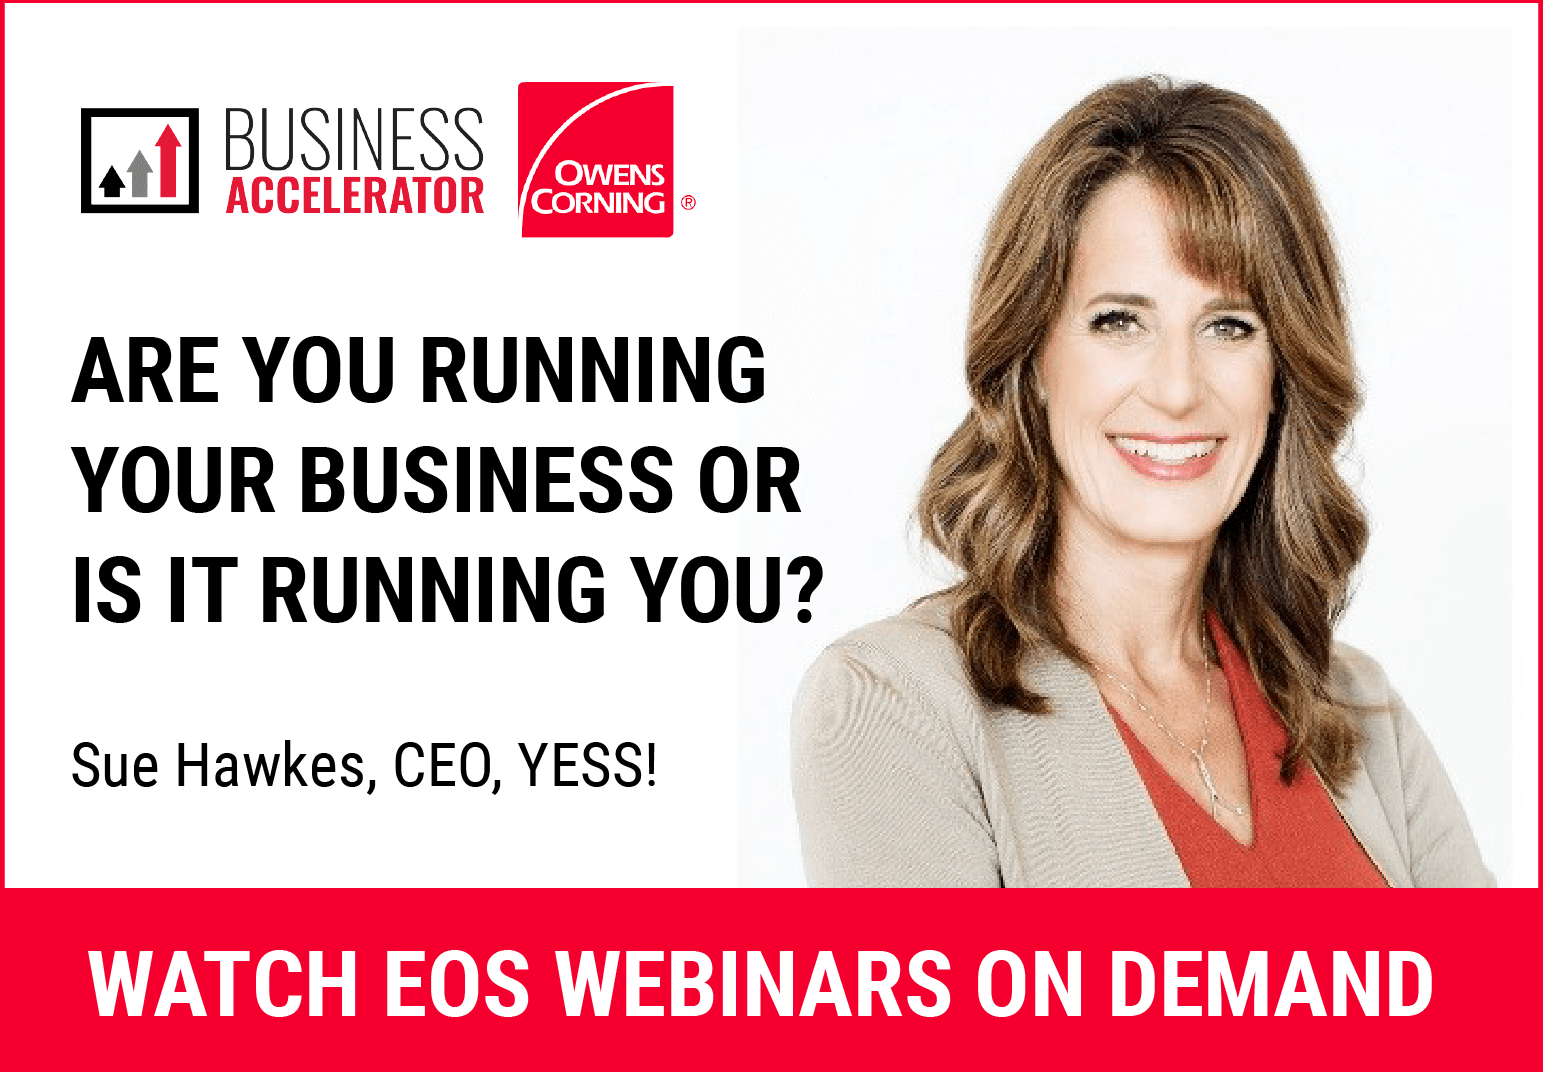 Owens Corning - Navigational Ad - Sue Hawk Webinar On Demand